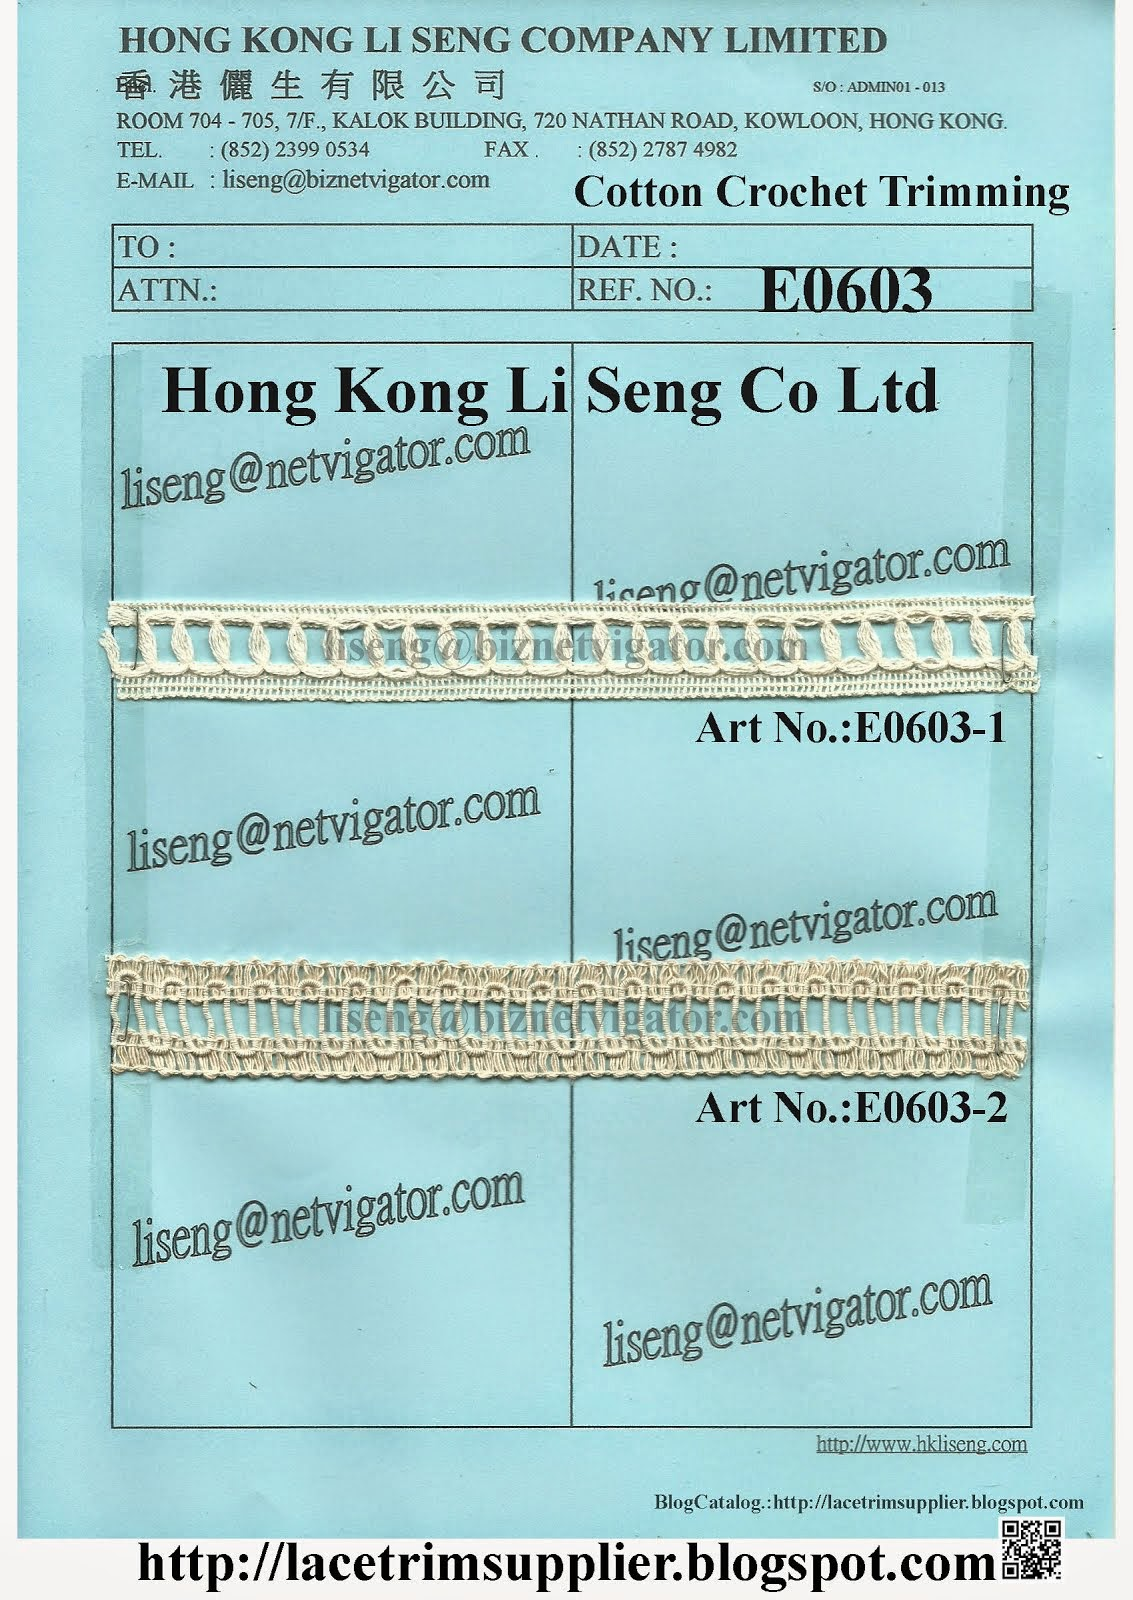 Cotton Crochet Trimming Manufacturer - Hong Kong Li Seng Co Ltd